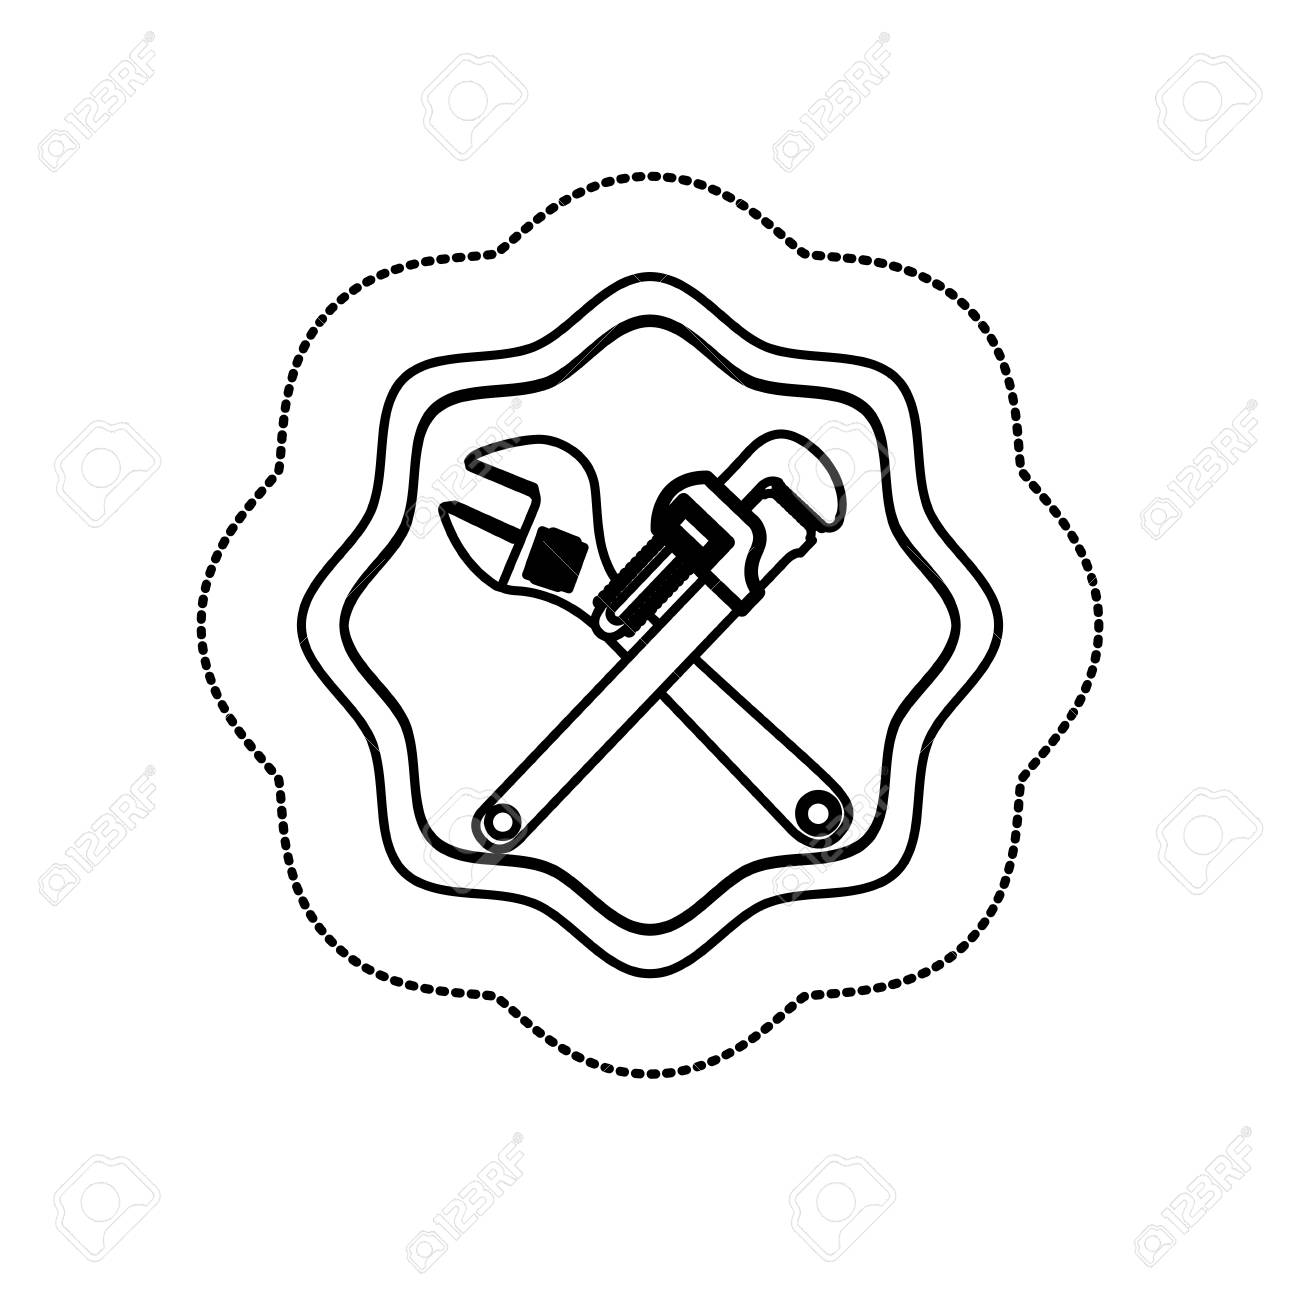 Monochrome Silhouette Sticker With Frame With Crossed Wrenches